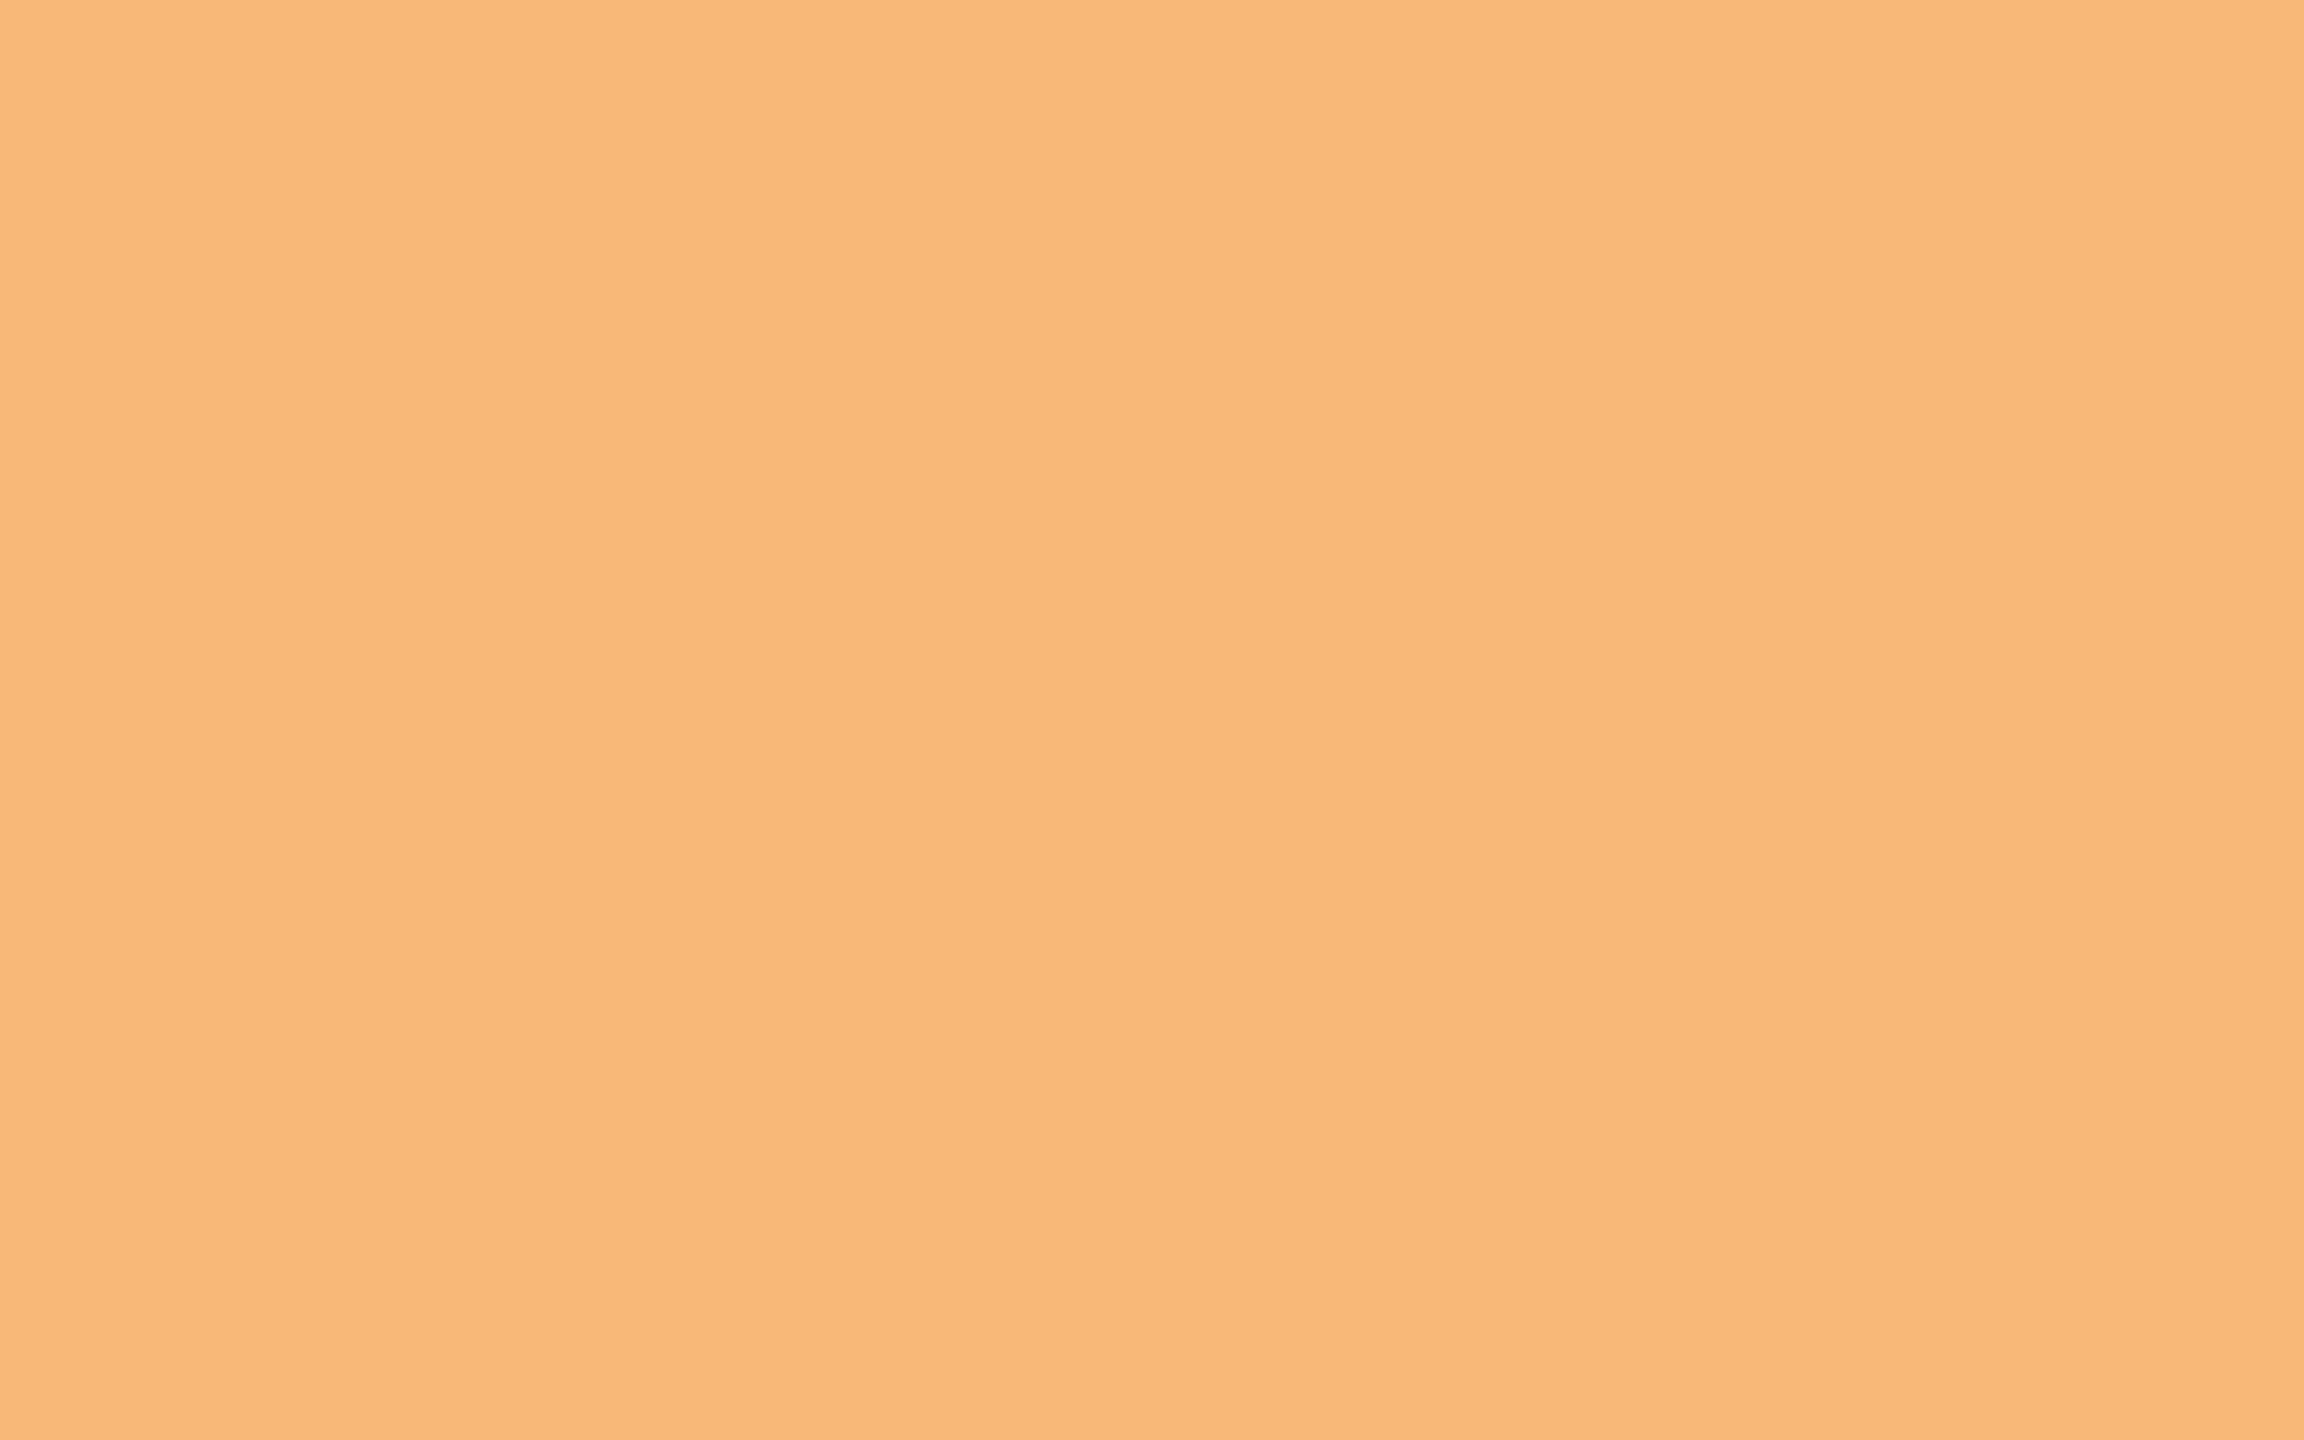 2304x1440 Mellow Apricot Solid Color Background